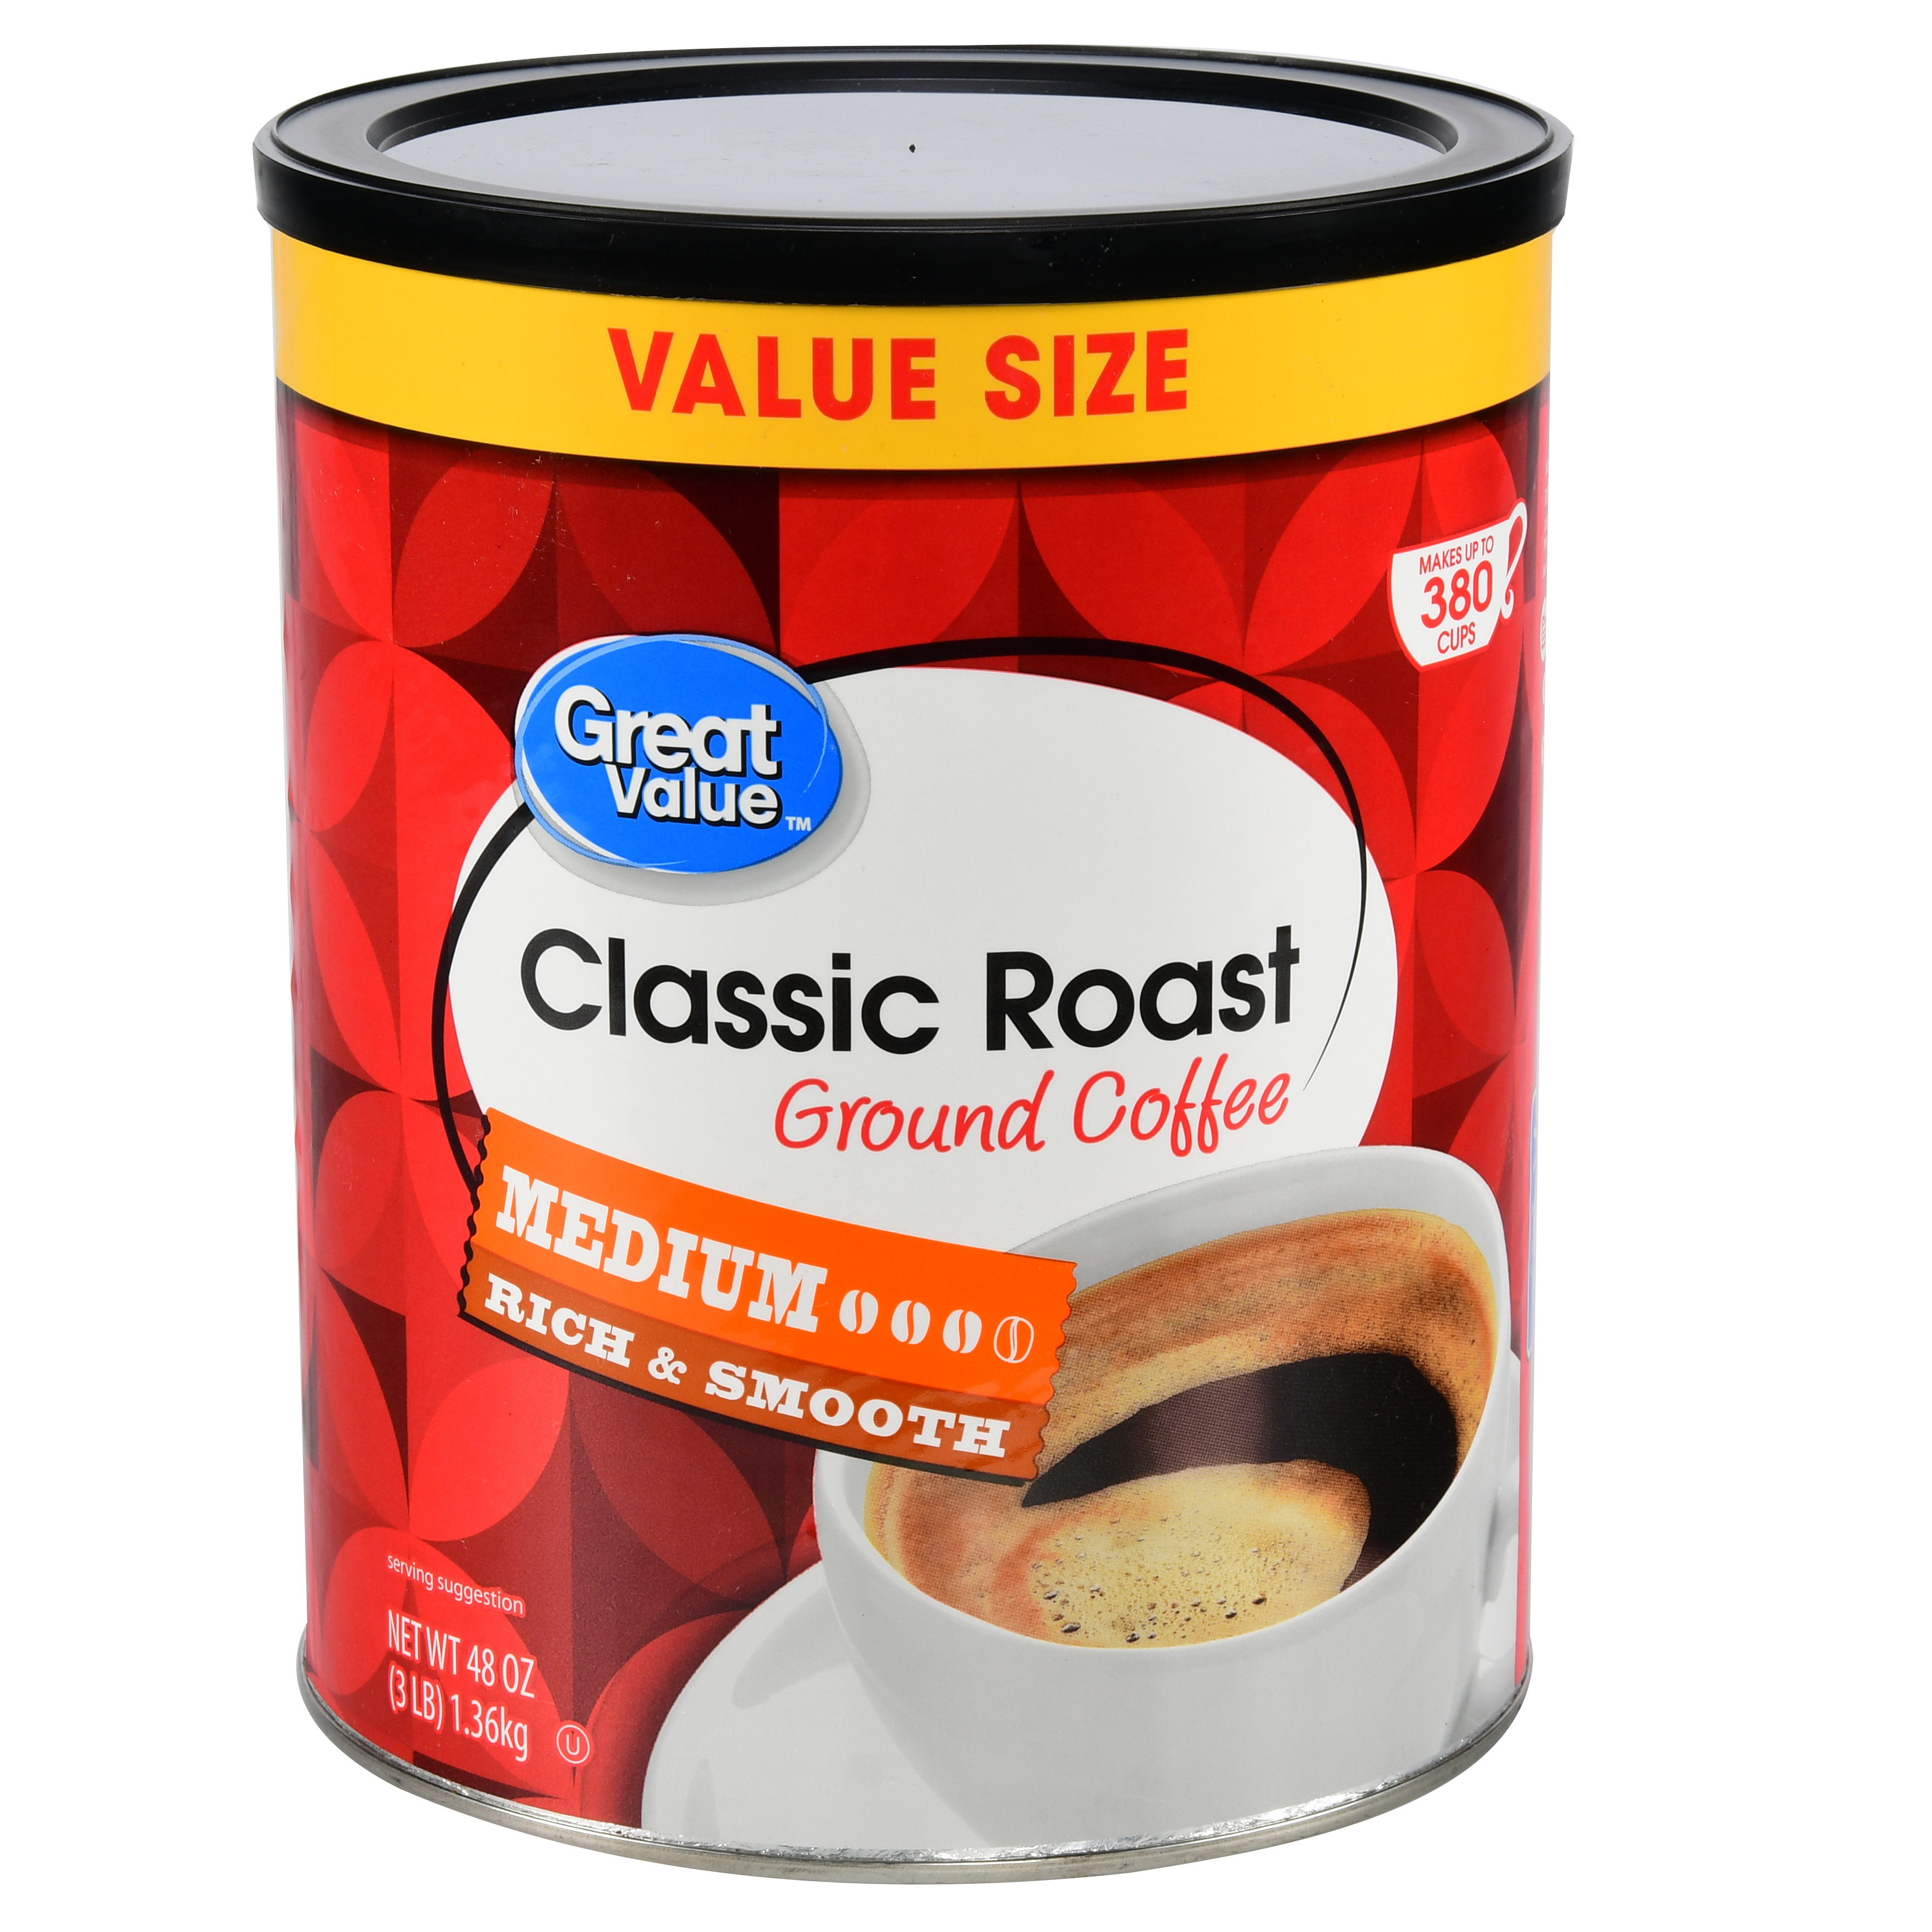 Great Value Classic Medium Roast Ground Coffee, 48 oz